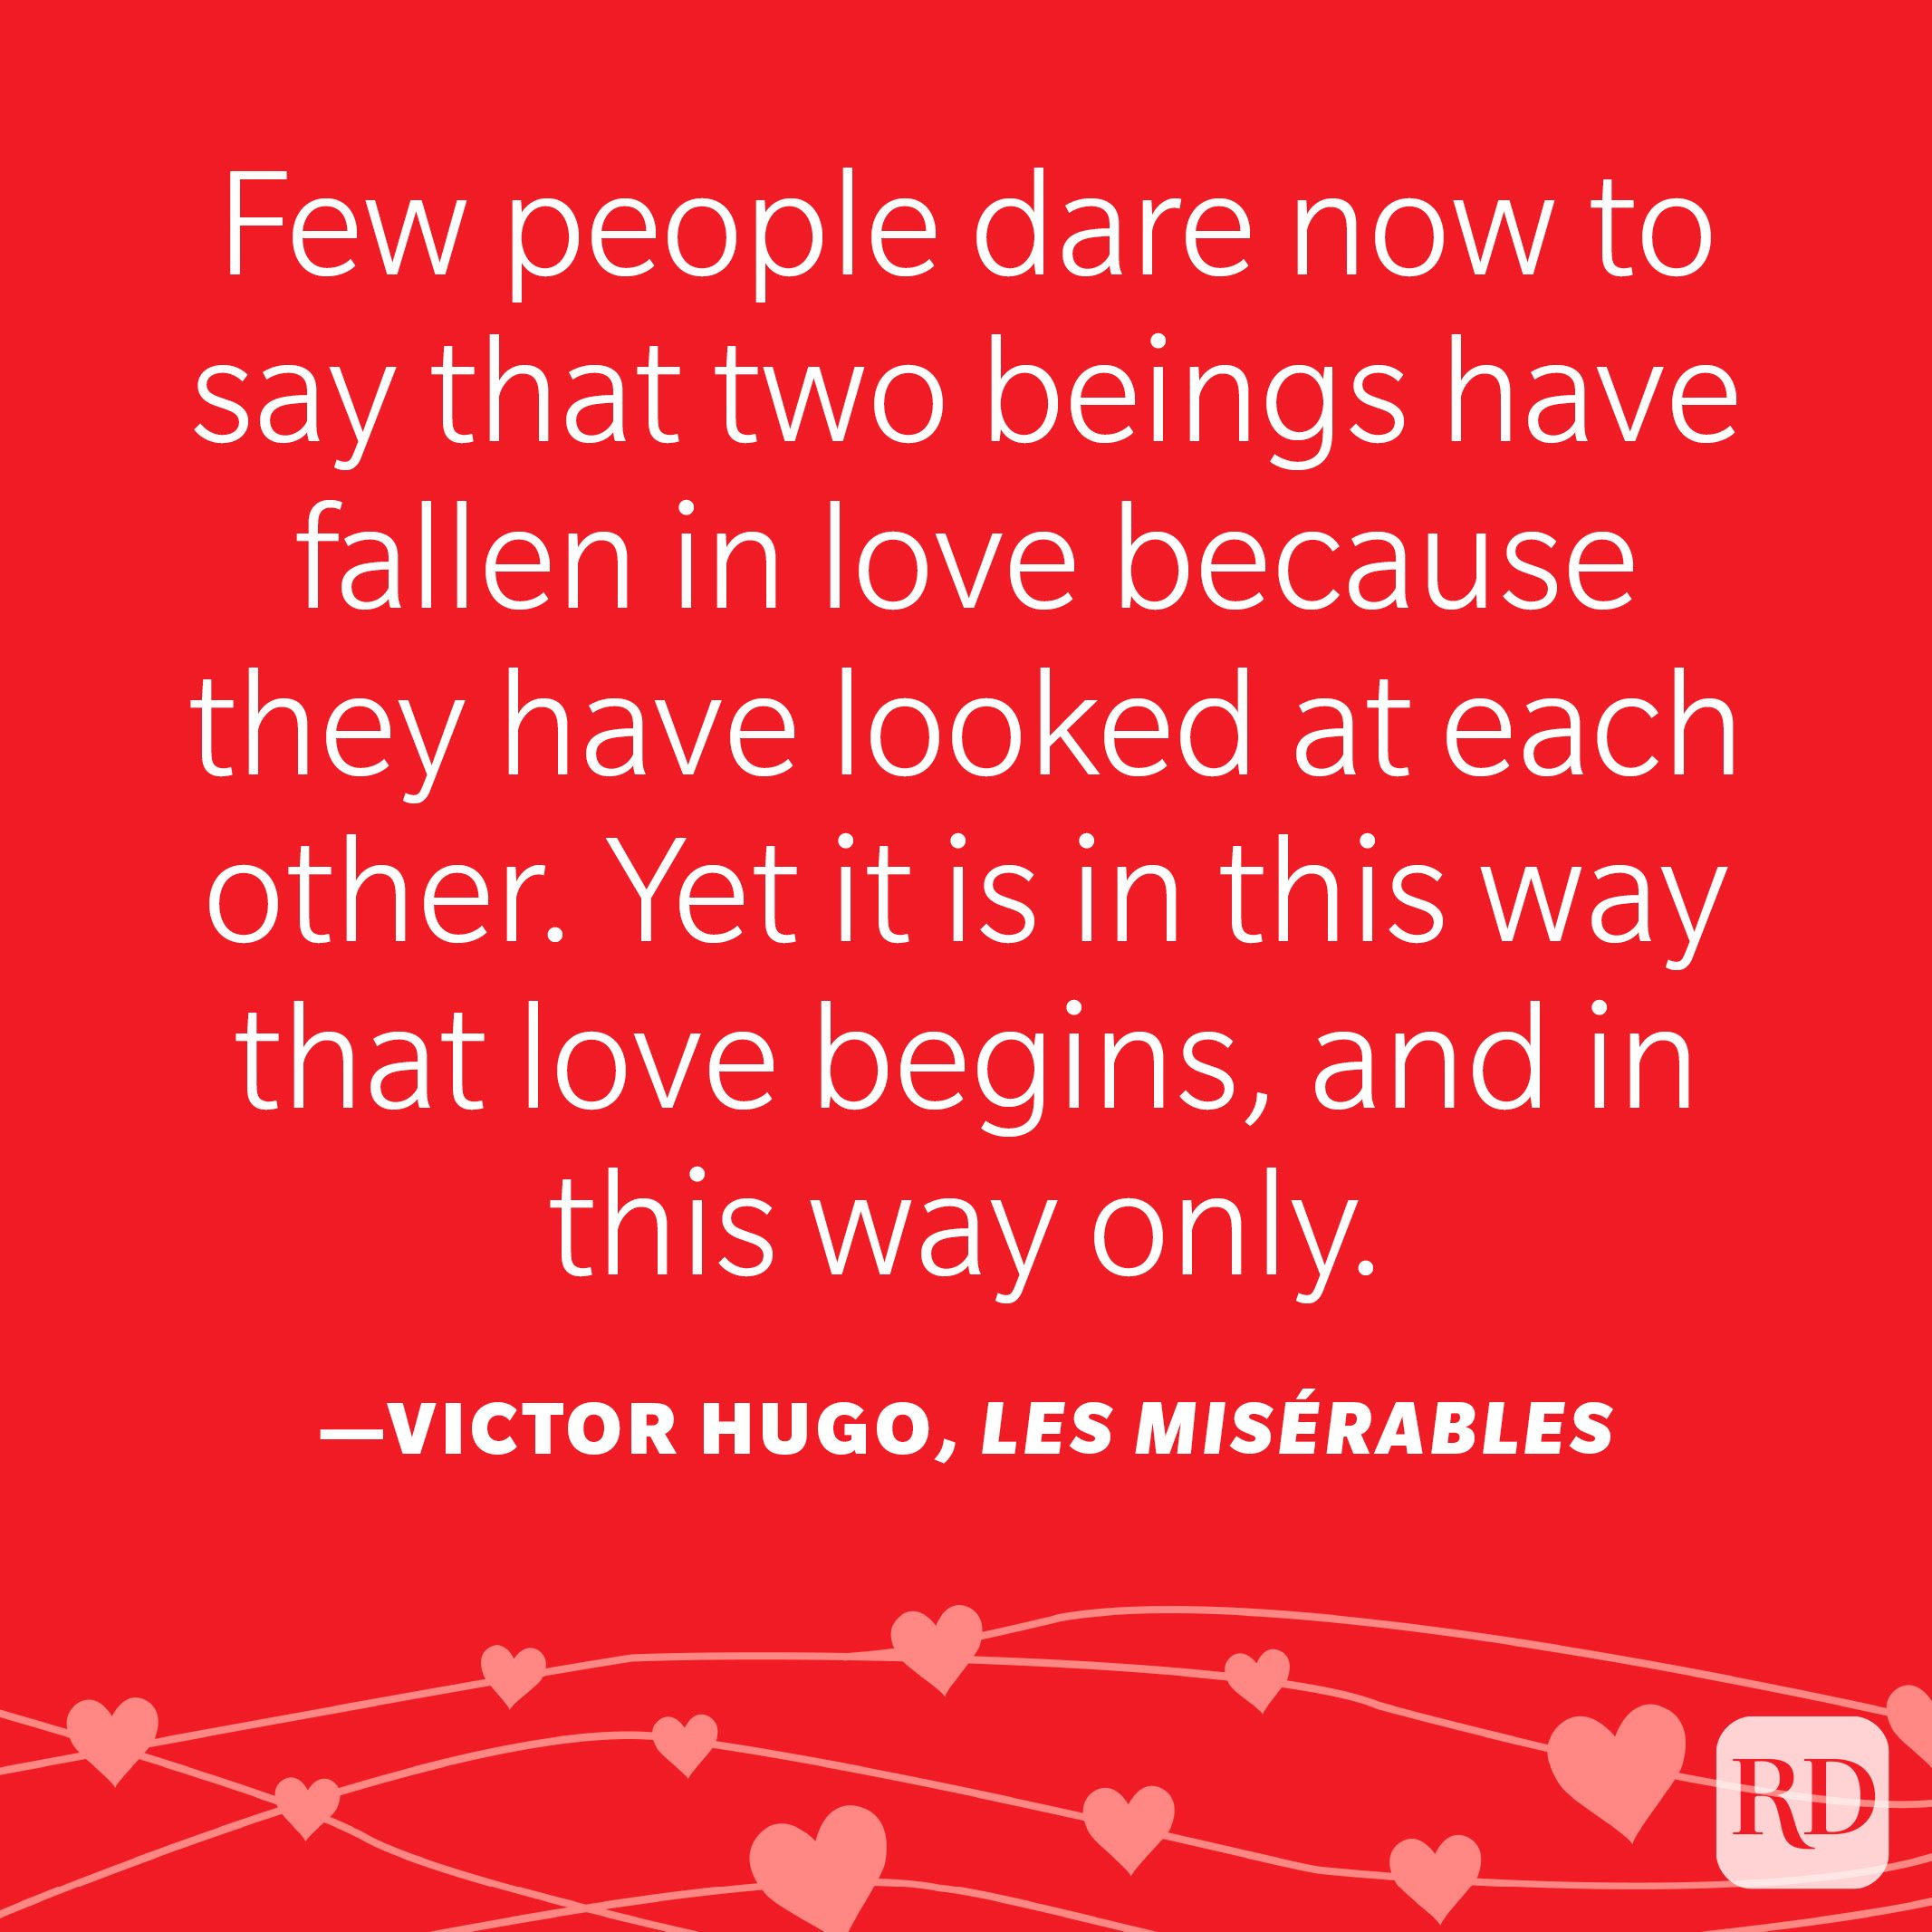 """""""The power of a glance has been so much abused in love stories, that it has come to be disbelieved in. Few people dare now to say that two beings have fallen in love because they have looked at each other. Yet it is in this way that love begins, and in this way only."""" —Victor Hugo, Les Misérables"""